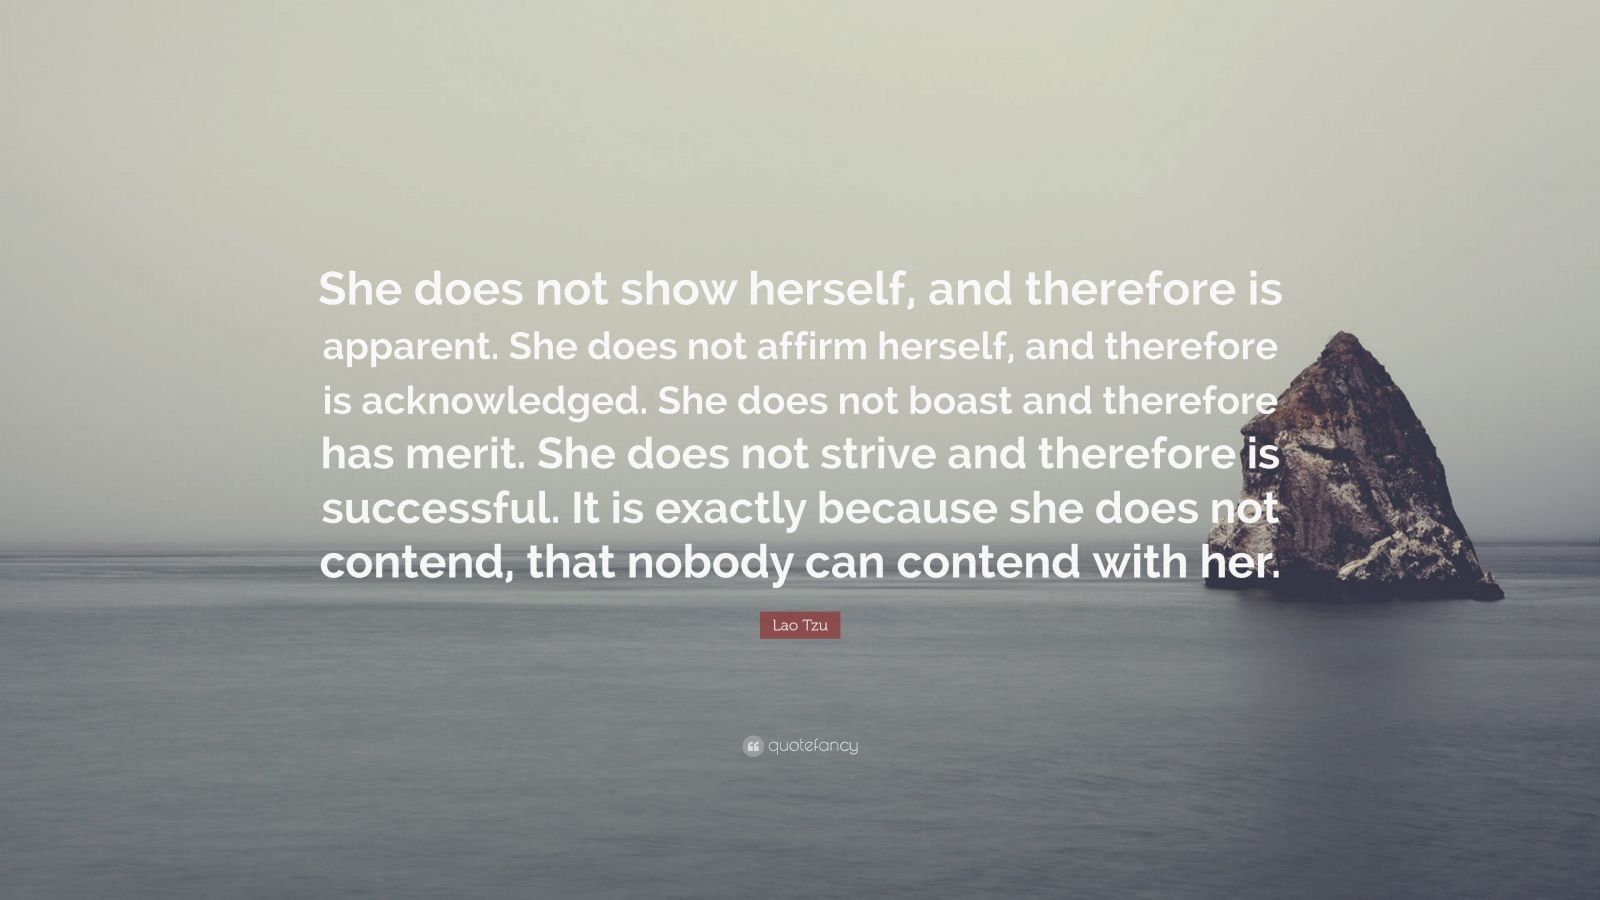 "Lao Tzu Quote: ""She does not show herself, and therefore is apparent. She does not affirm herself, and therefore is acknowledged. She does not boast and therefore has merit. She does not strive and therefore is successful. It is exactly because she does not contend, that nobody can contend with her."""